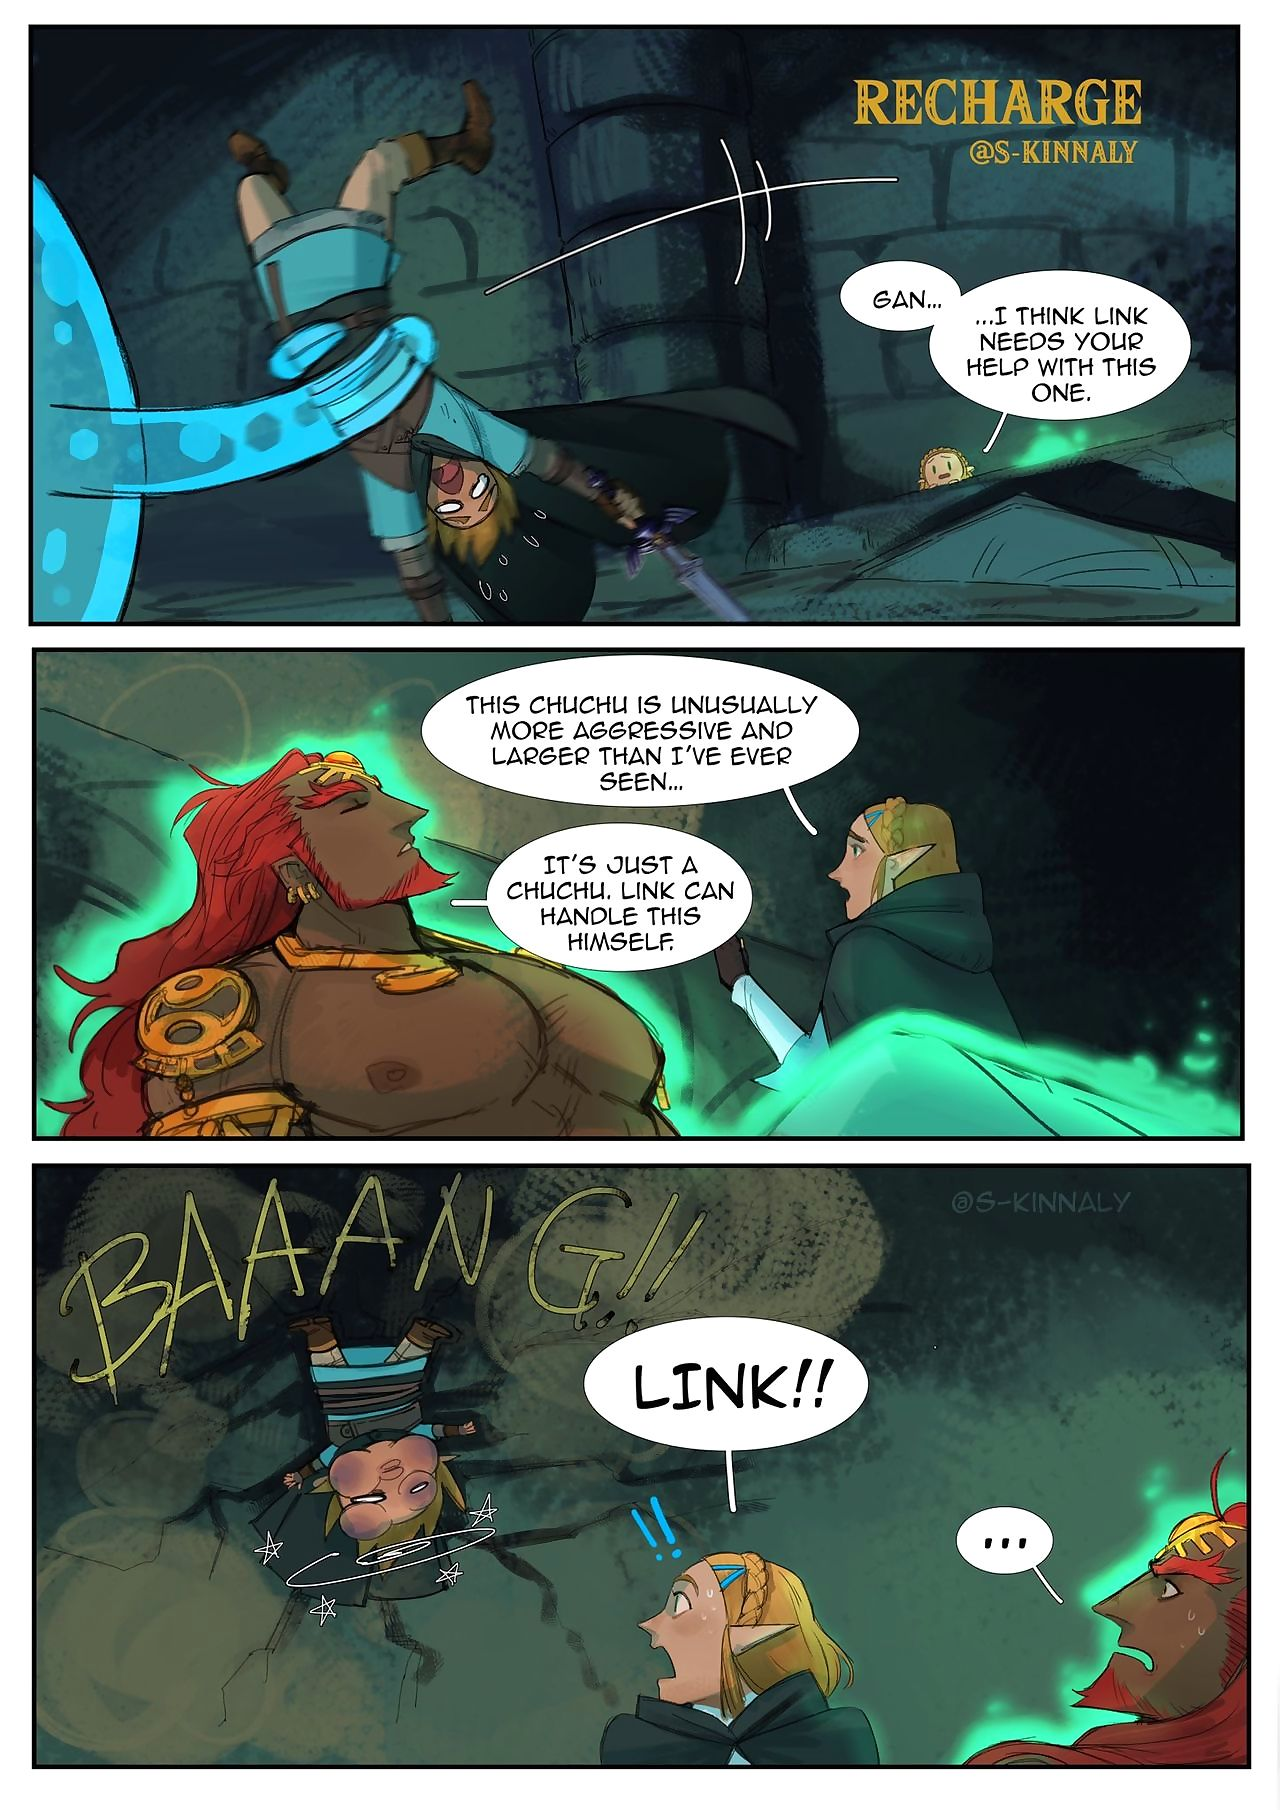 Zelda BOTW2 comics - faithfulness 2